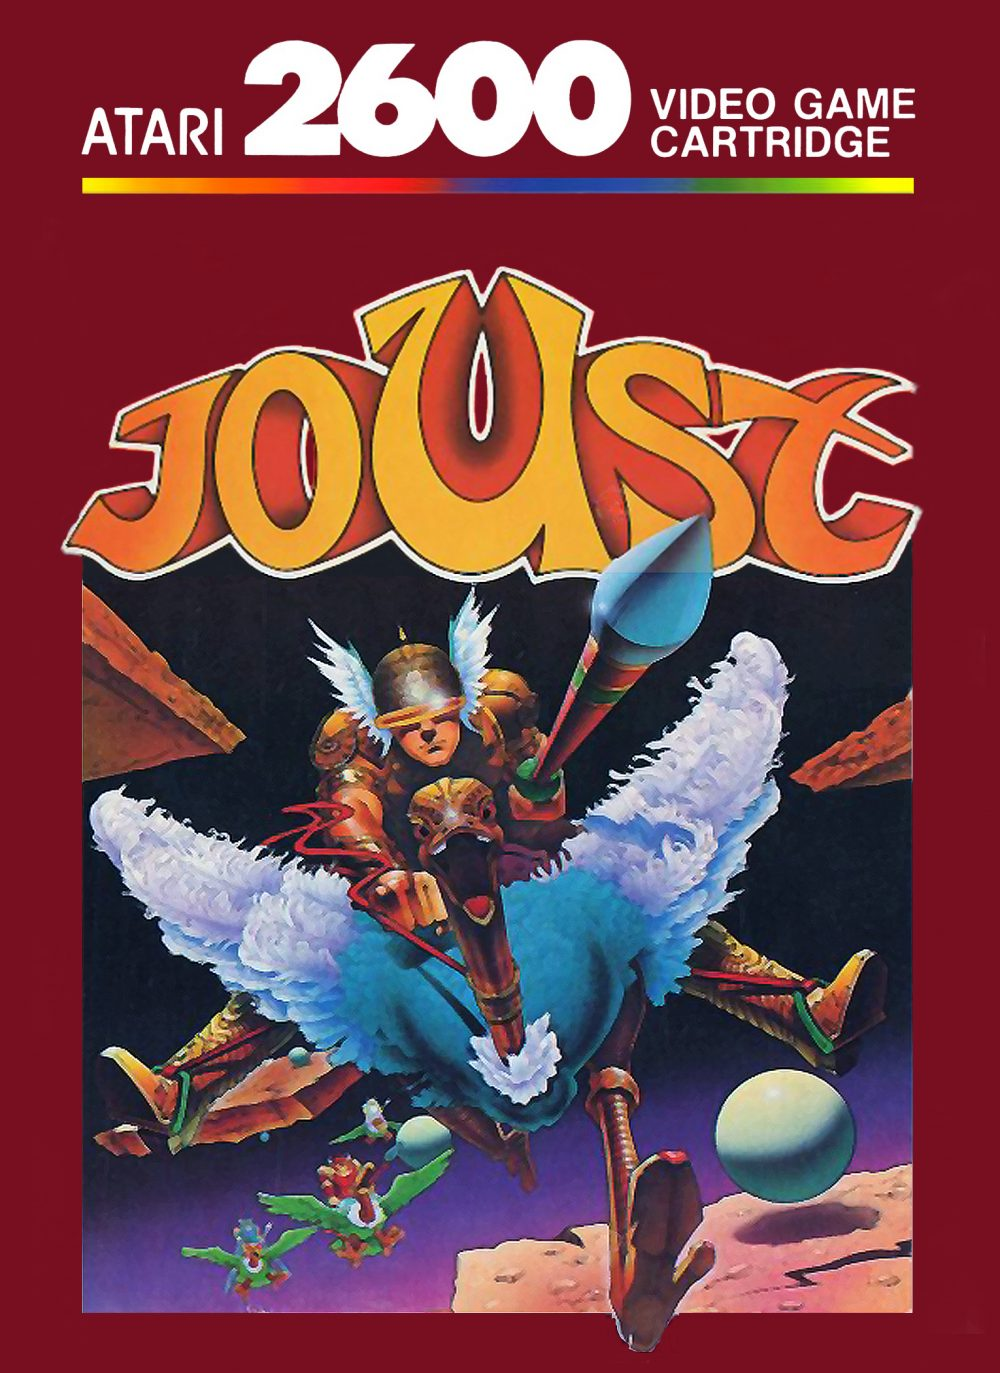 [Happy Birthday!] Joust